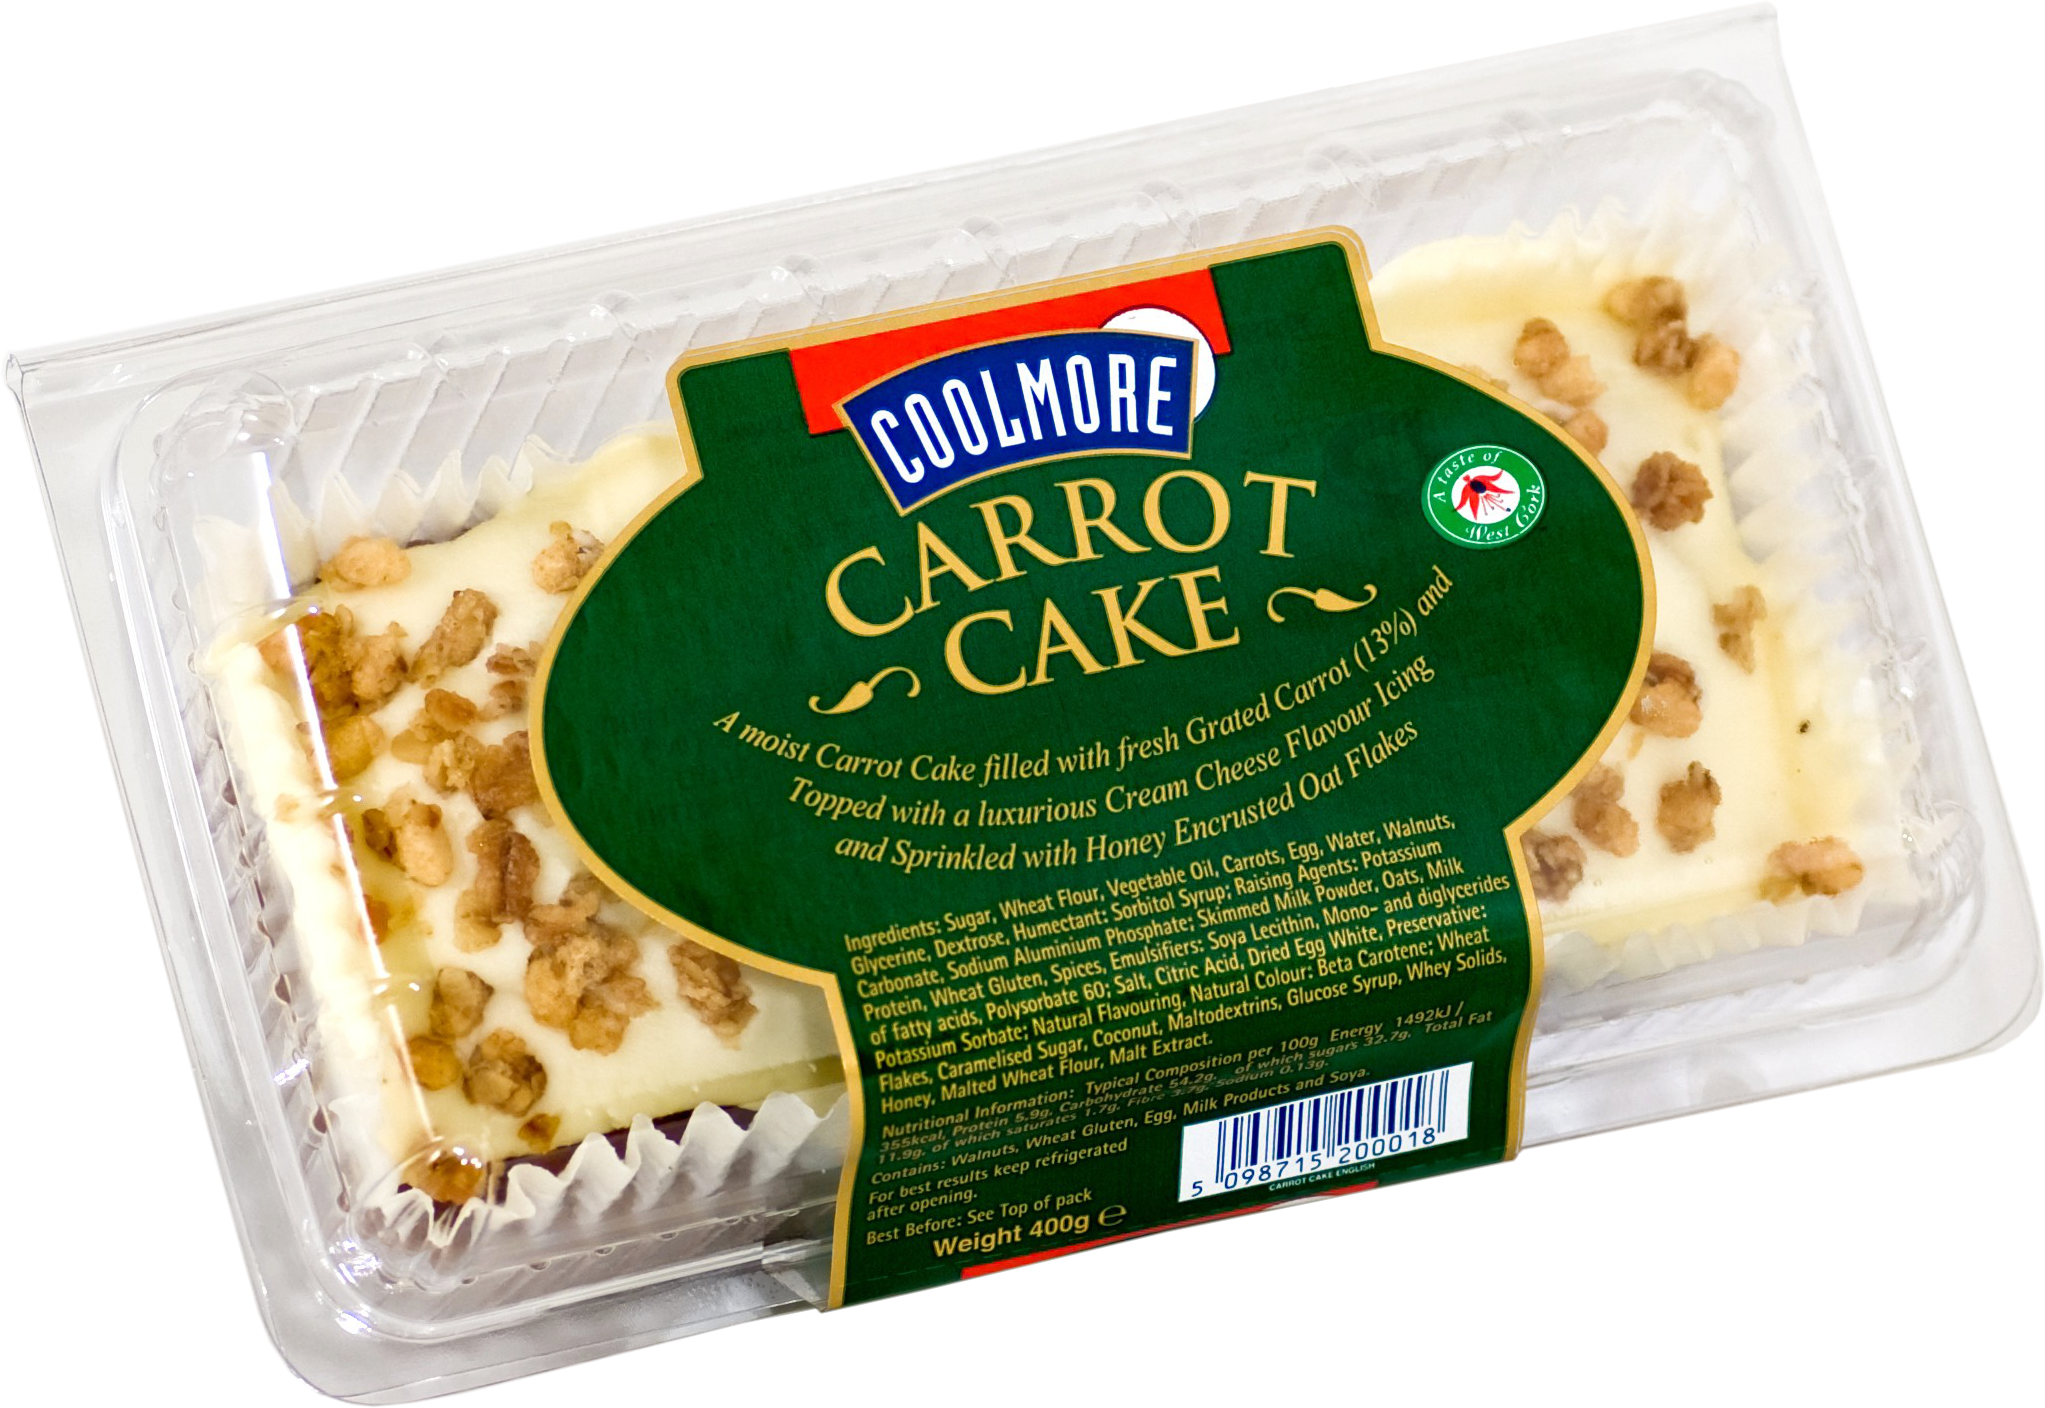 CK 121 Coolmore Iced Carrot Cake